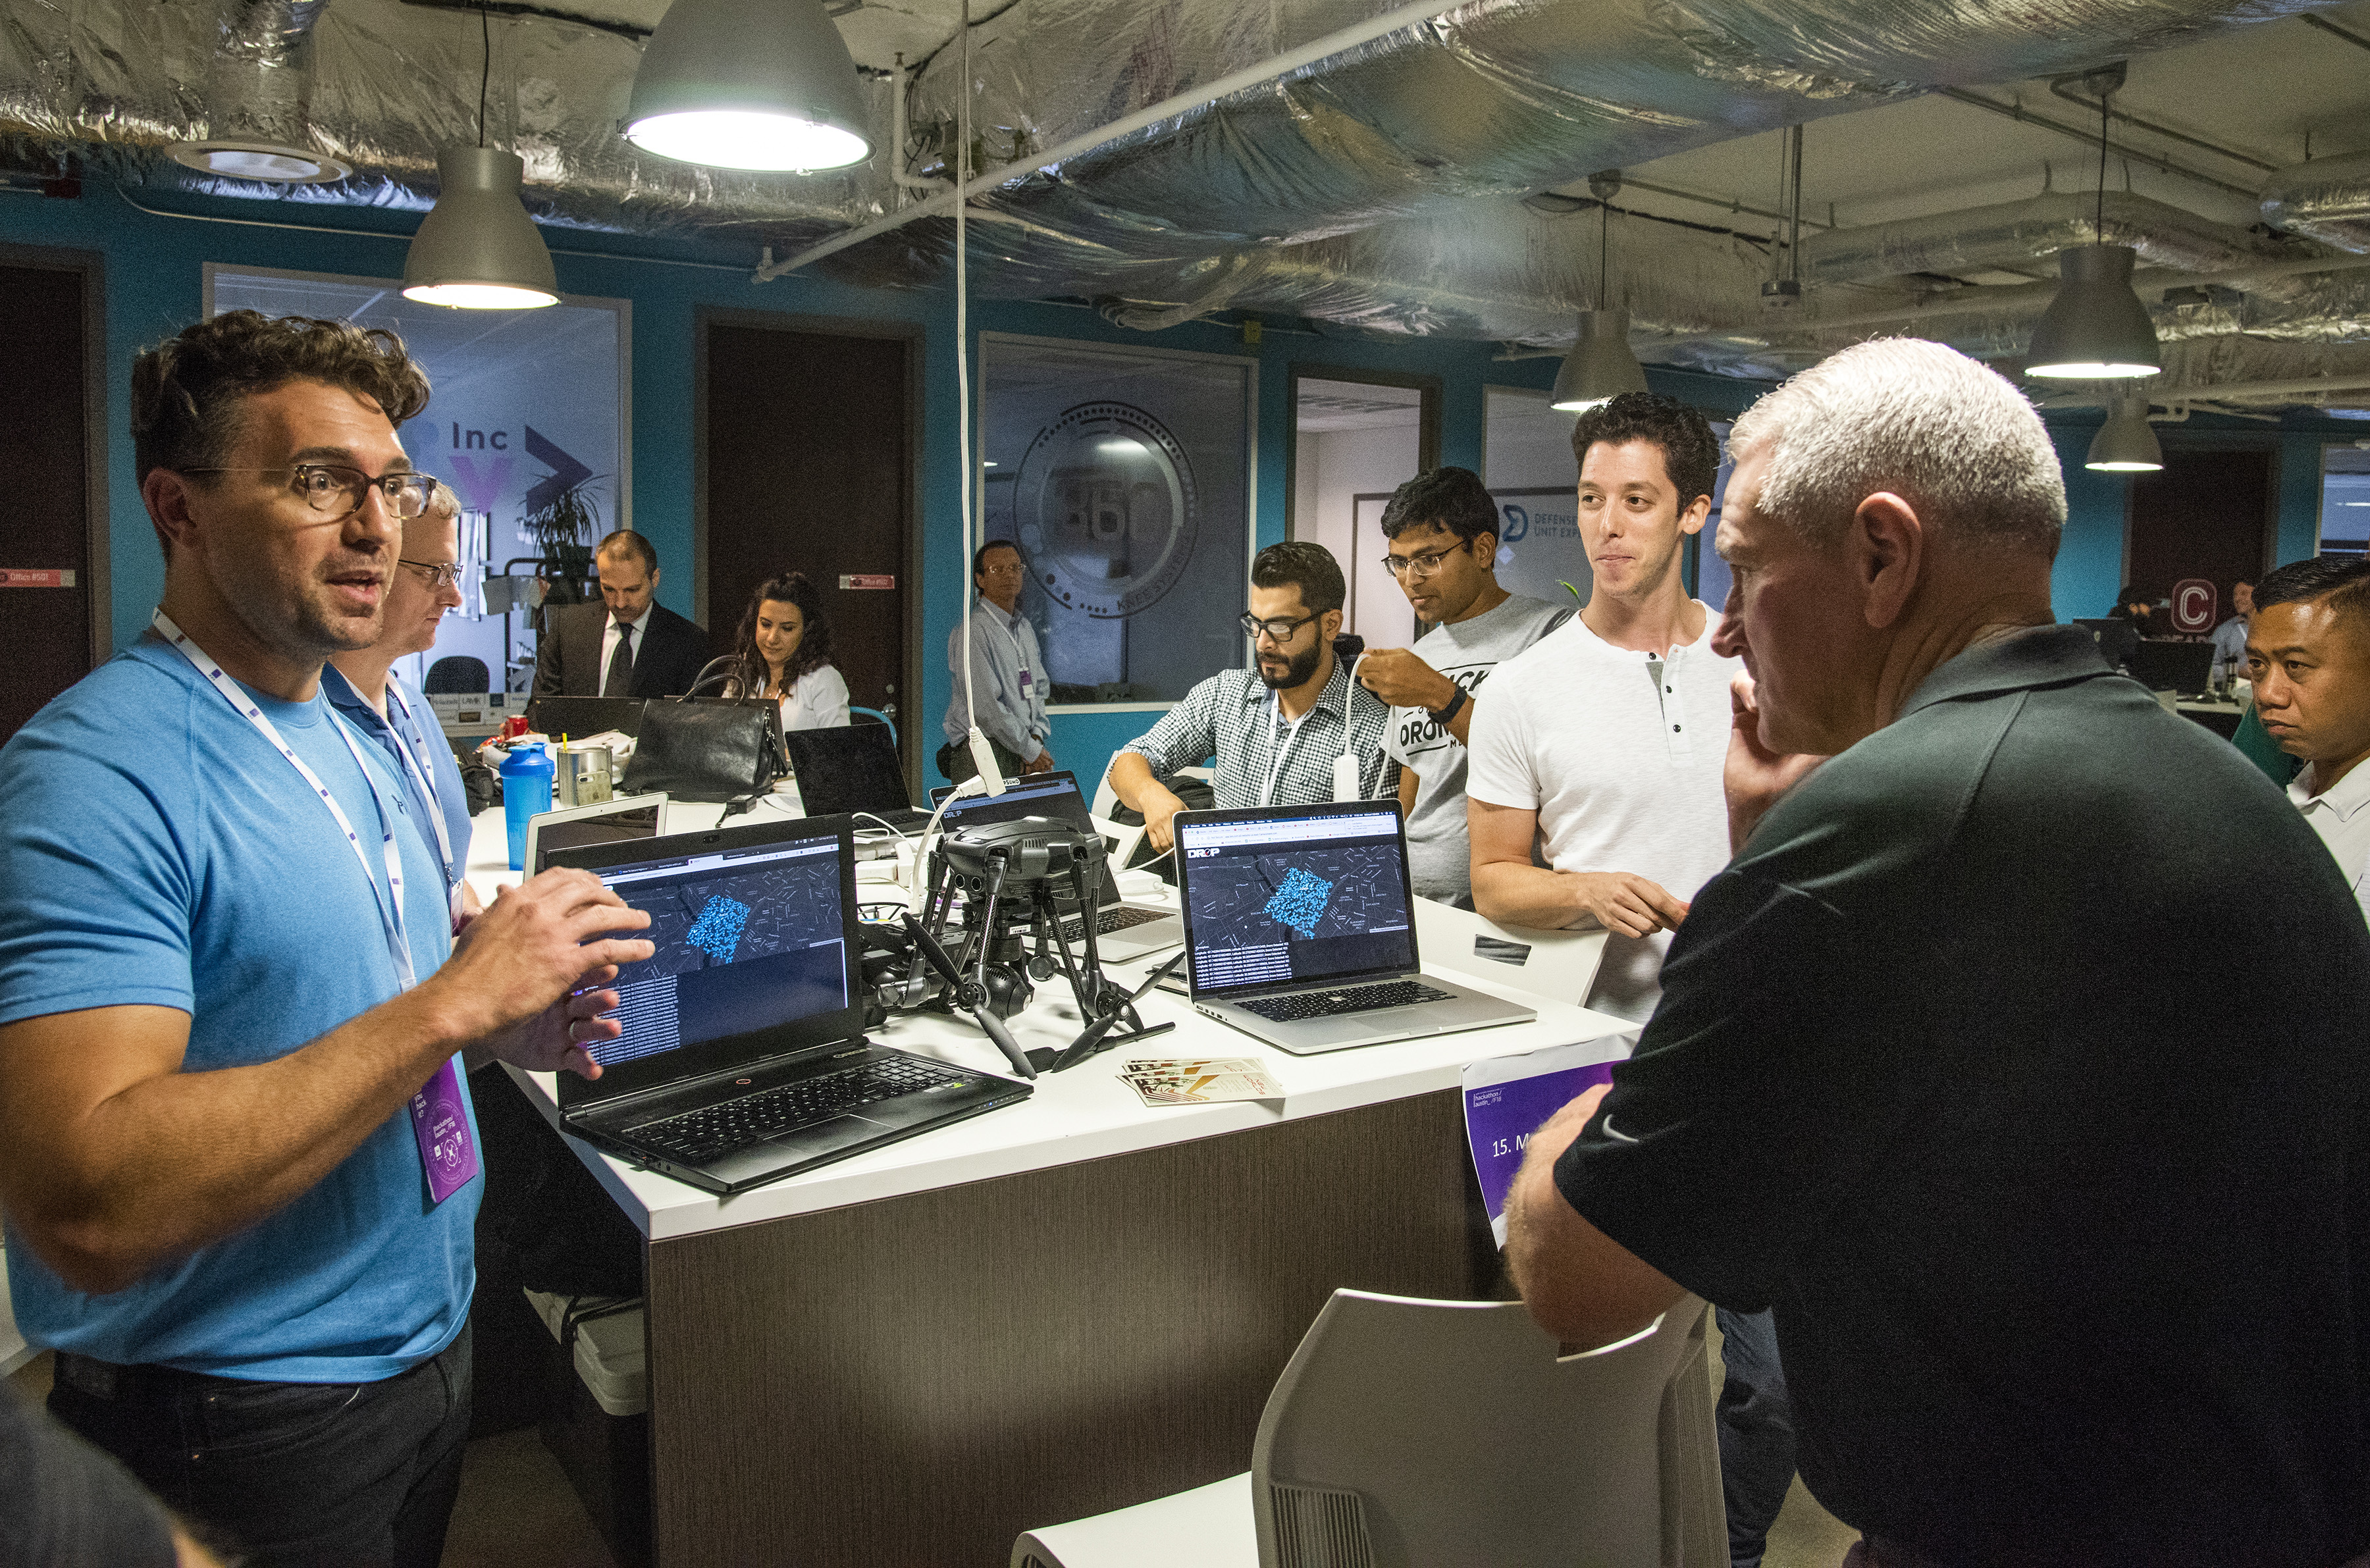 Gen. John Murray, right, the head of Army Futures Command, listens to innovators during a visit to Capital Factory in Austin, Texas, on Sept. 30, 2018. (Courtesy of the U.S. Army)